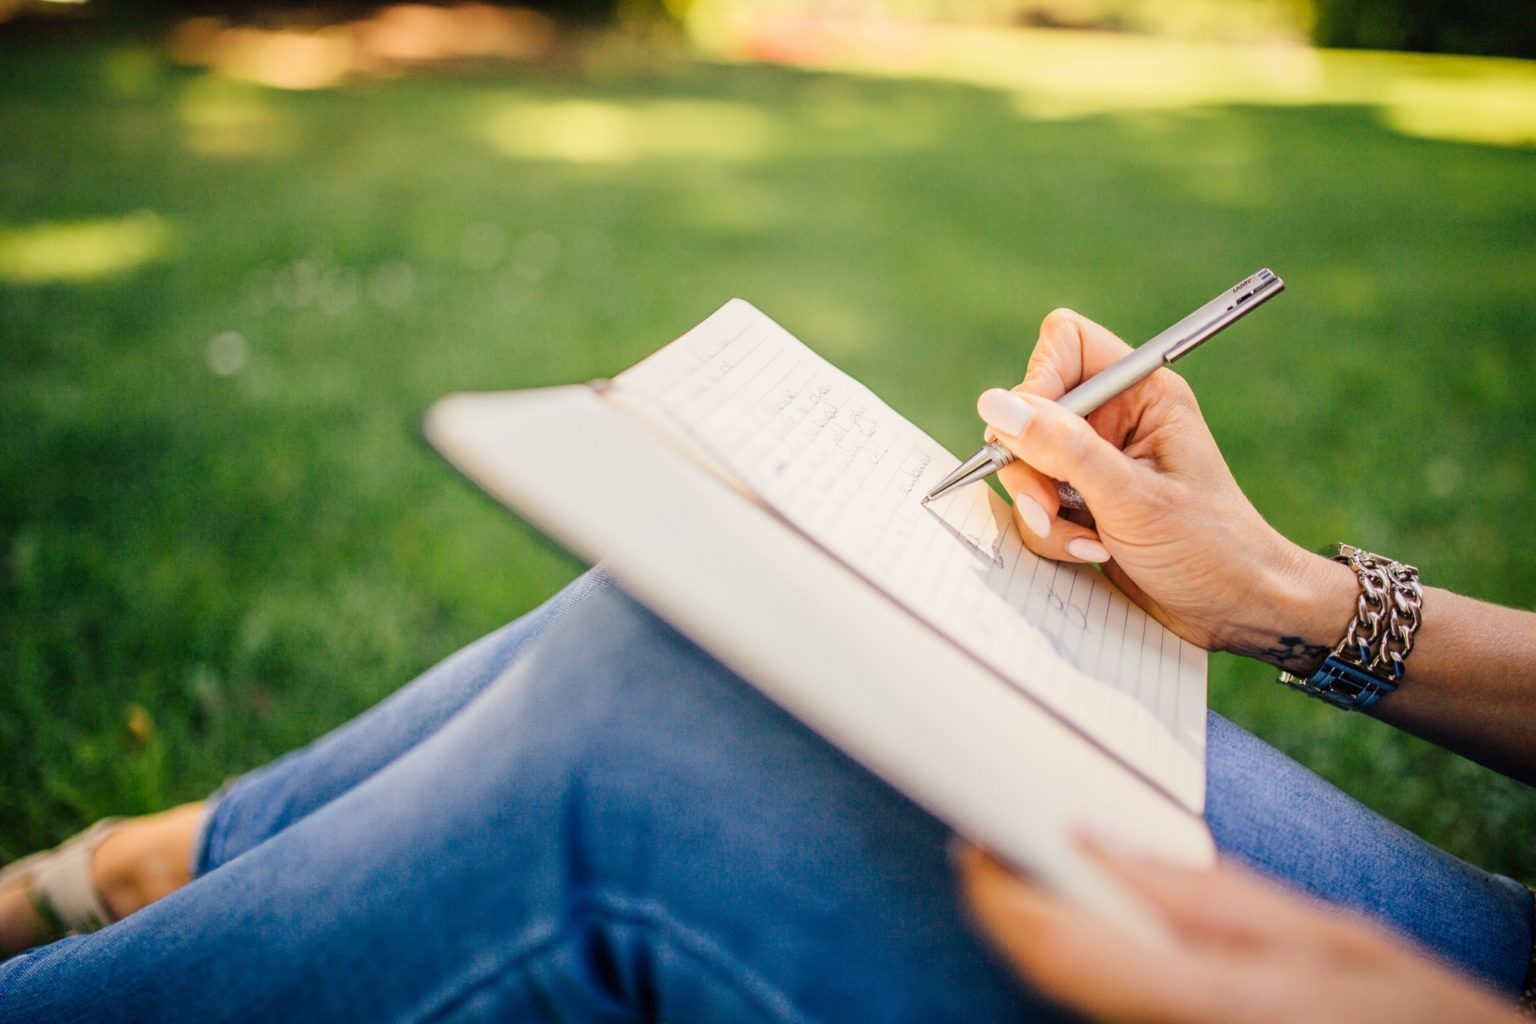 Writing - Woman's hand writing with a pen in a paper journal